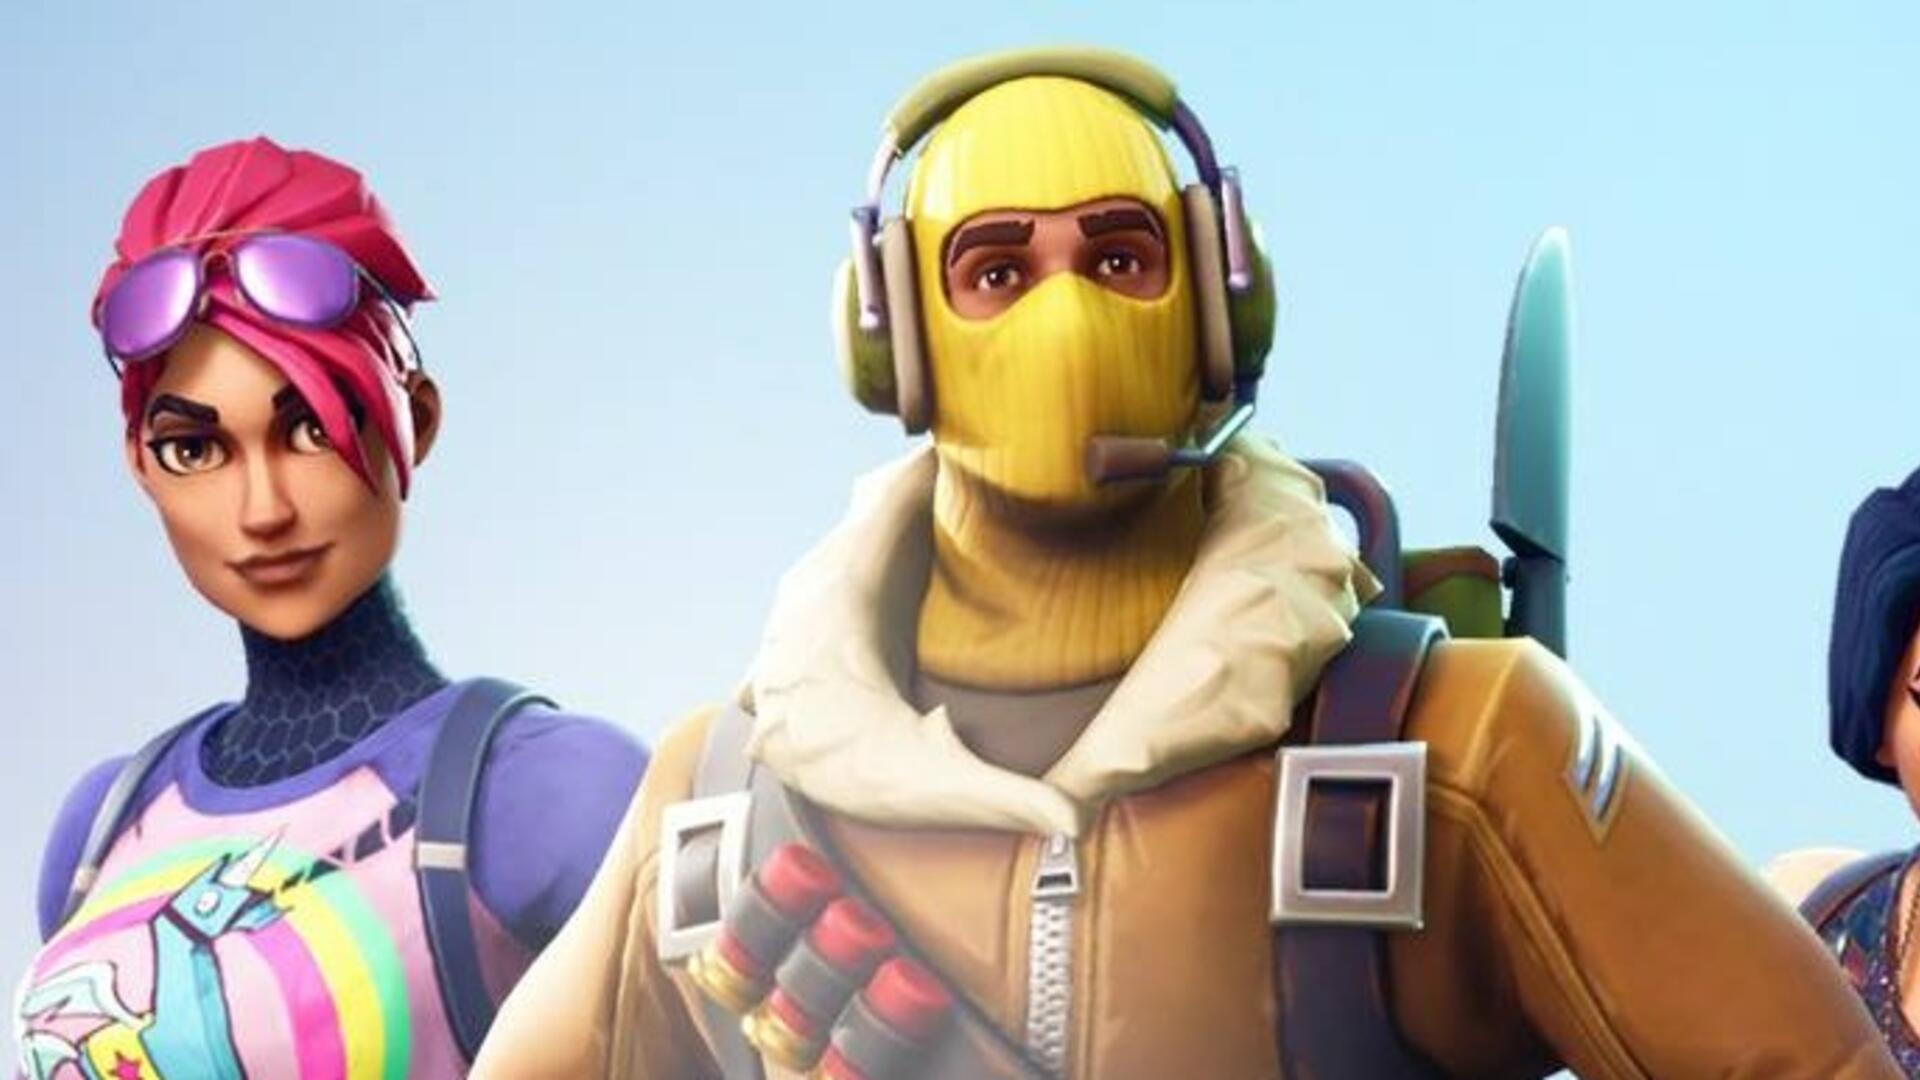 New Countdown Timer Appears on Fortnite on Switch, but No One Knows What It's For